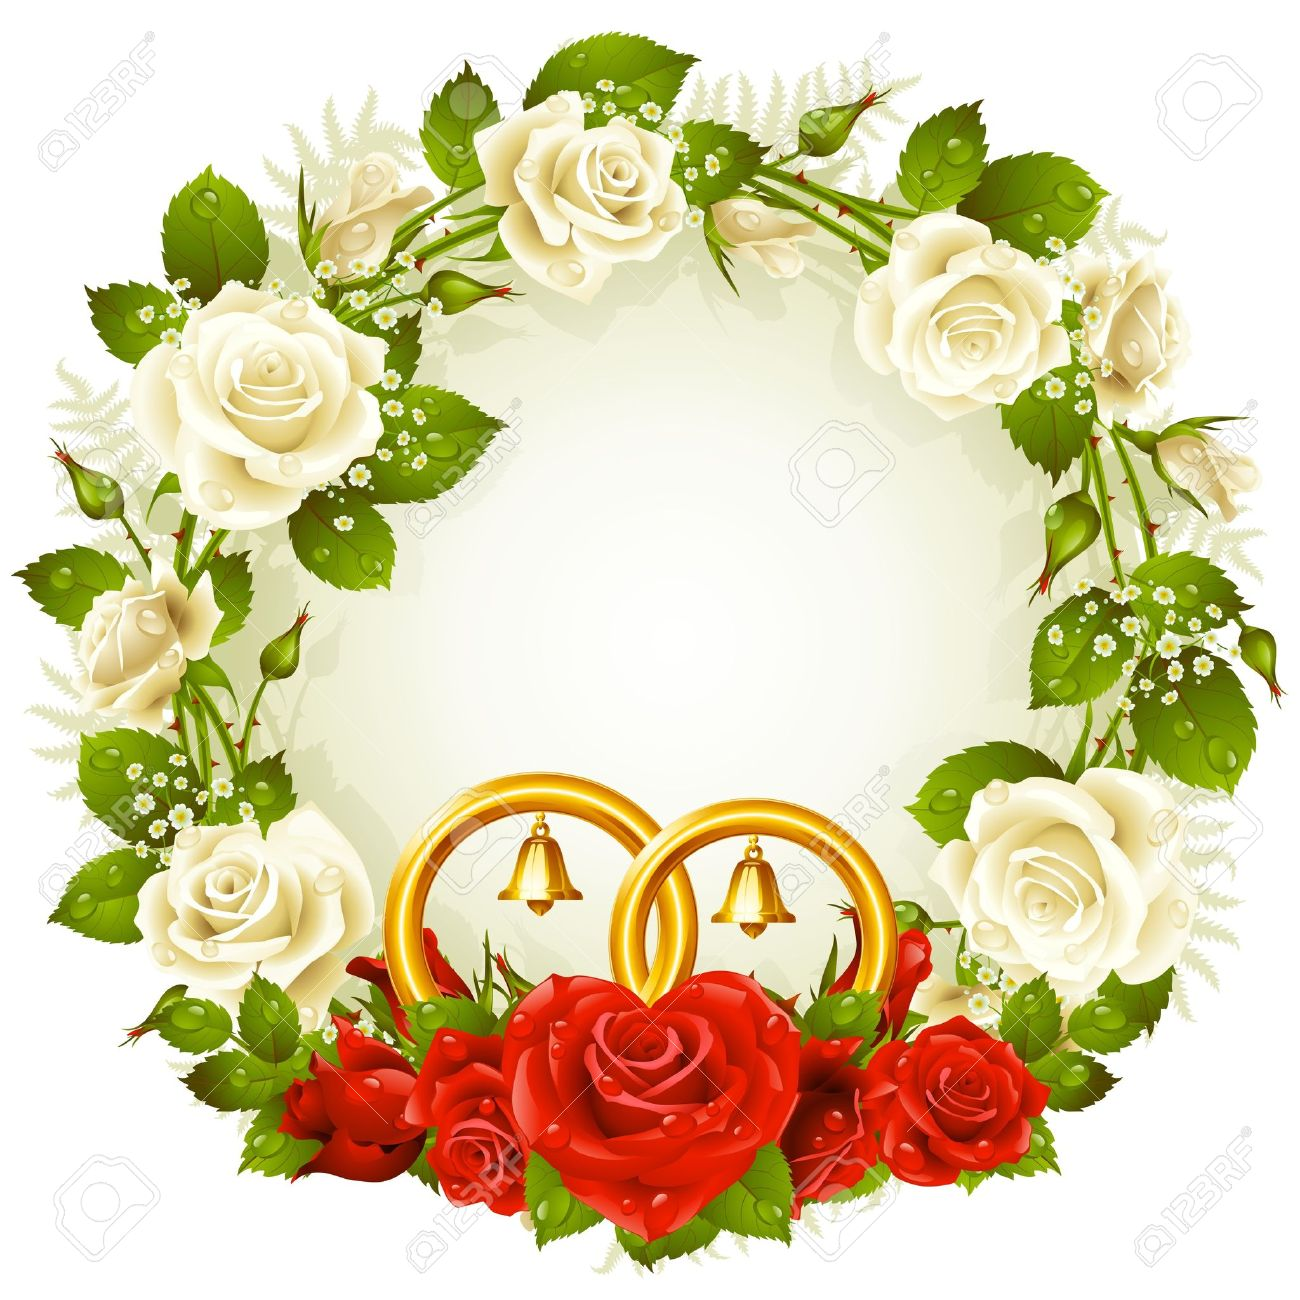 722a6698db15 frame with white and red rose and golden wedding rings Stock Vector -  10610549